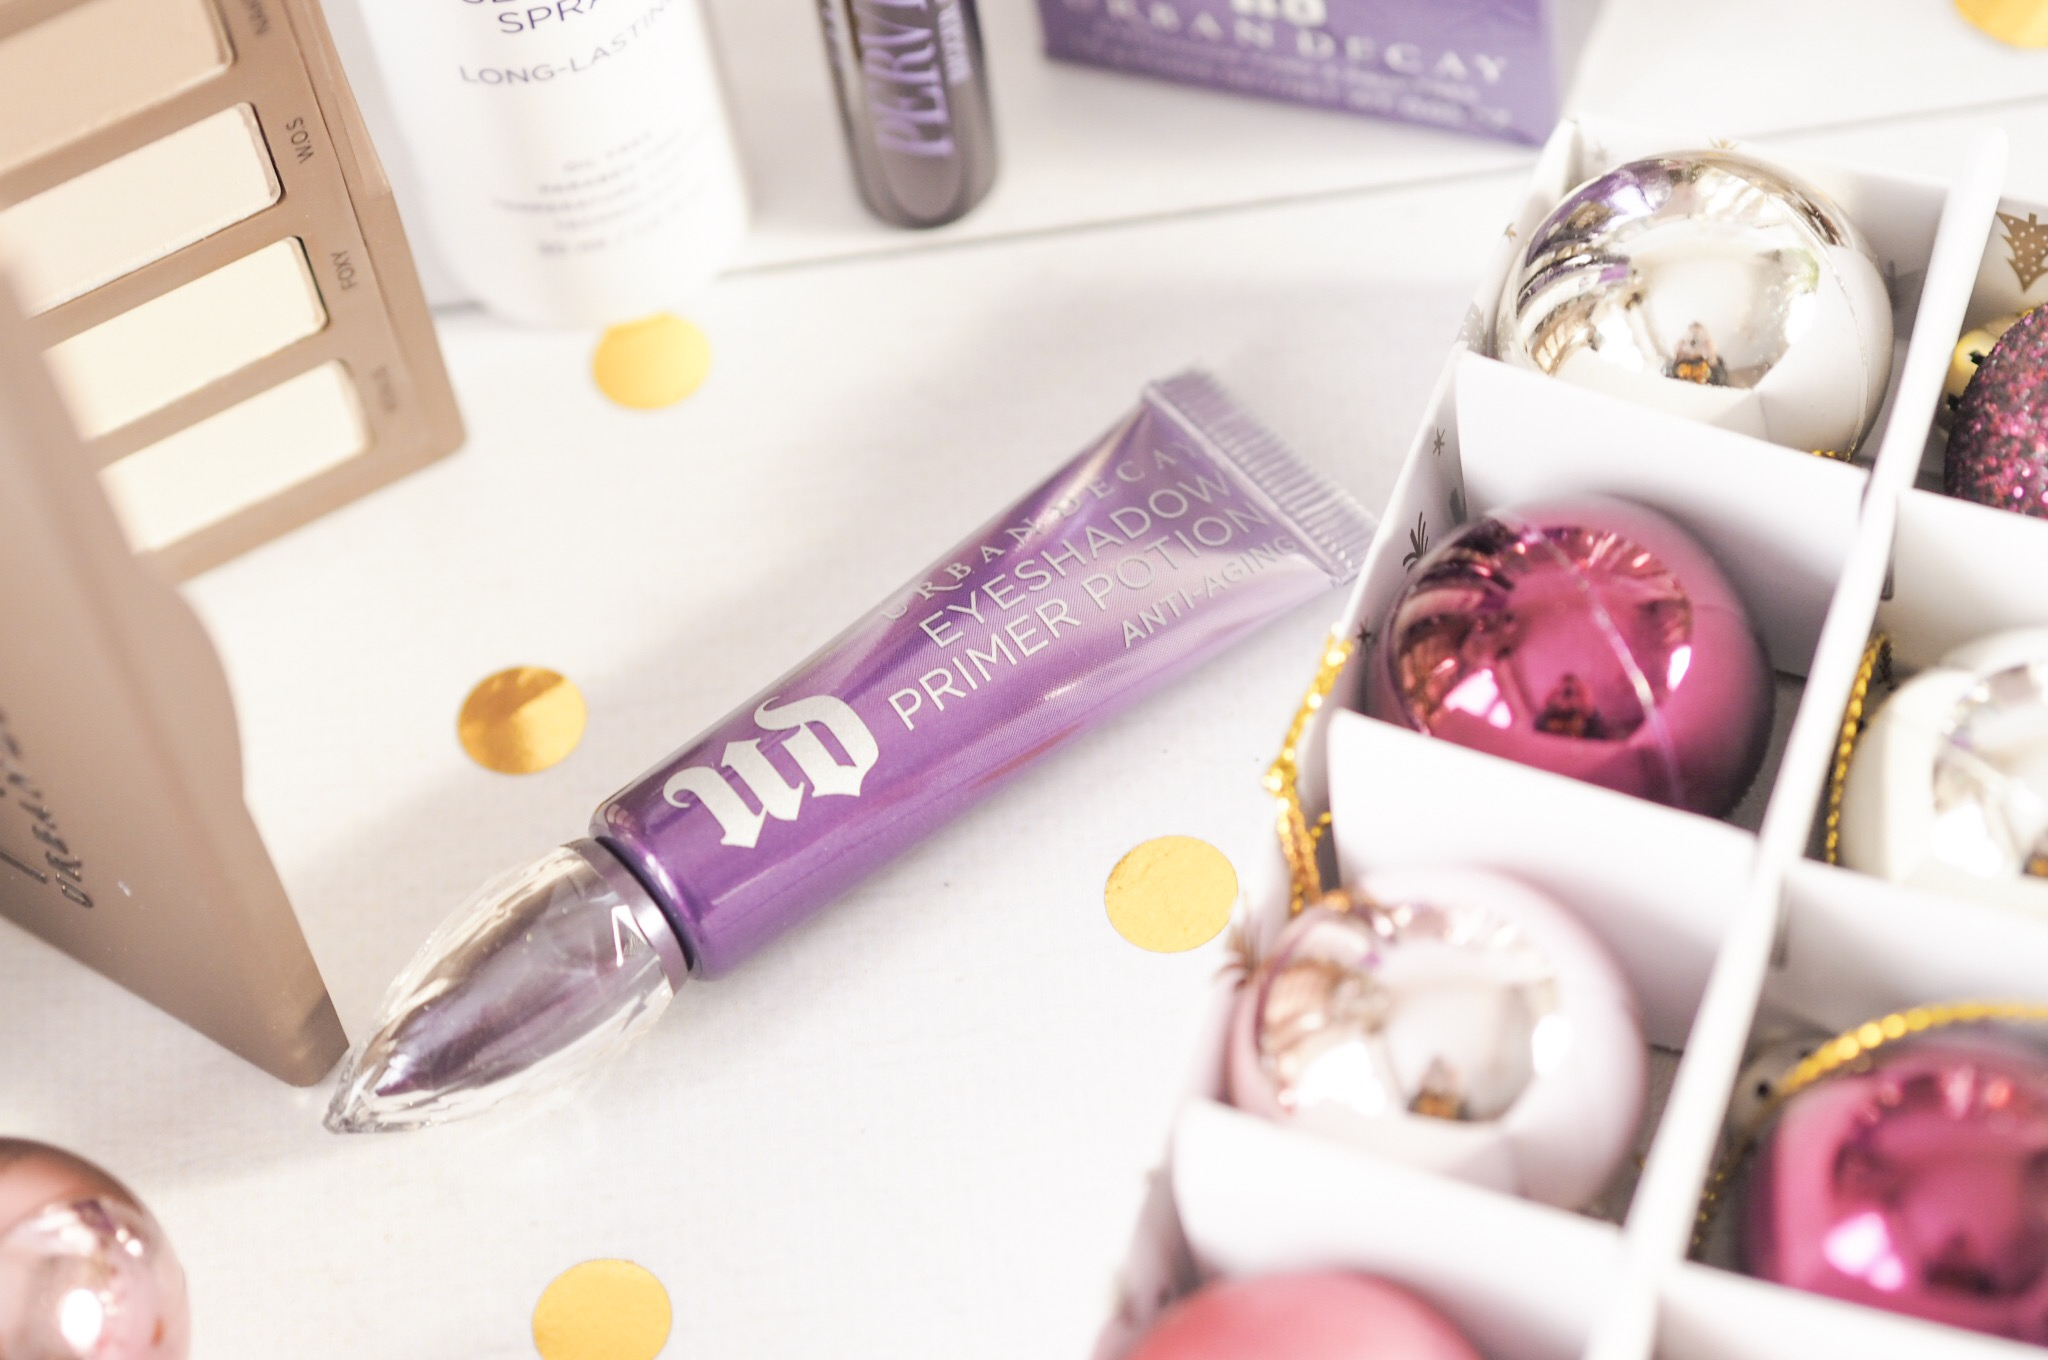 Urban Decay x Feel Unique Beauty on The Go Kit - Christmas